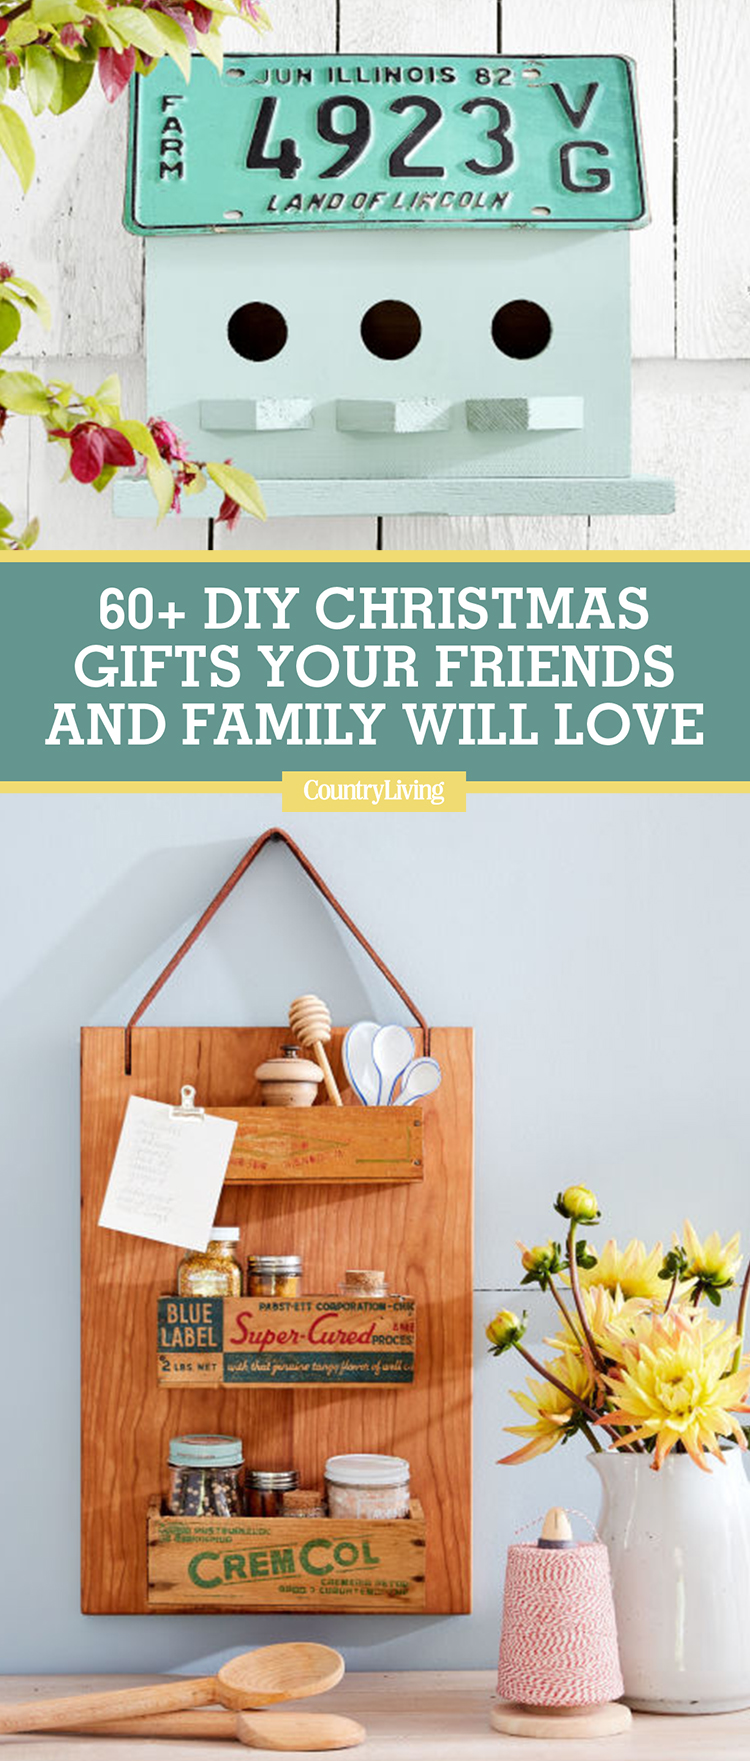 60 DIY Homemade Christmas Gifts - Craft Ideas for ...